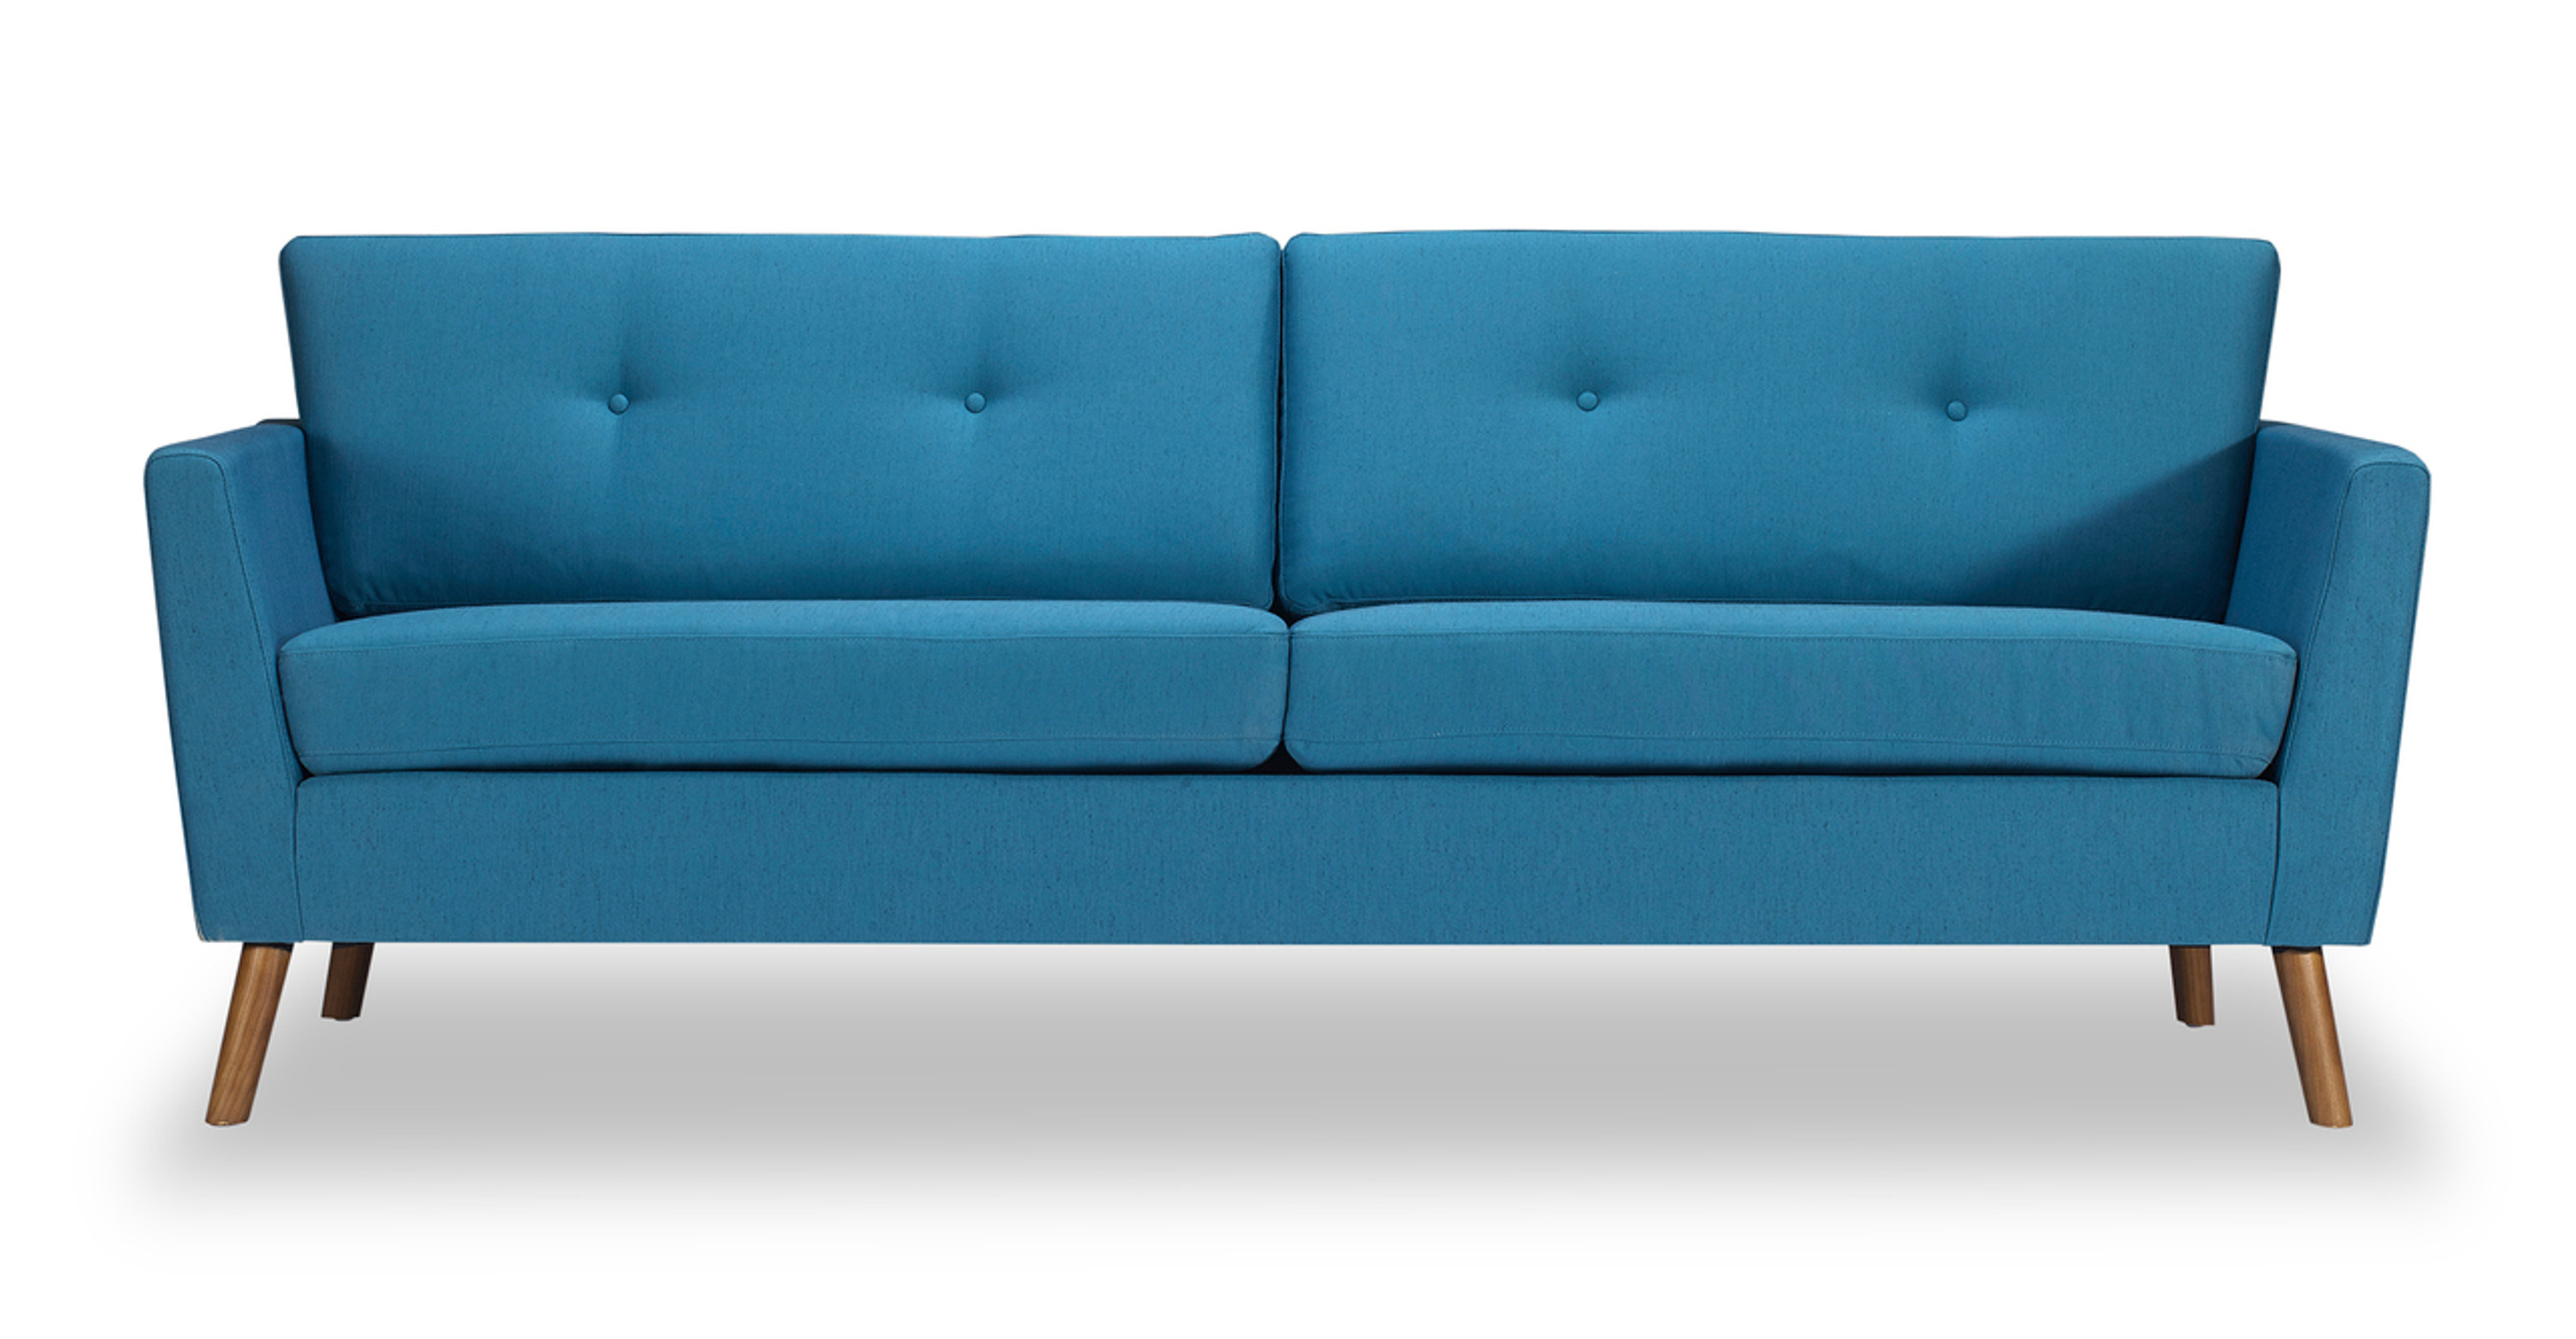 Articulate Modern Sofa, Urban Surf